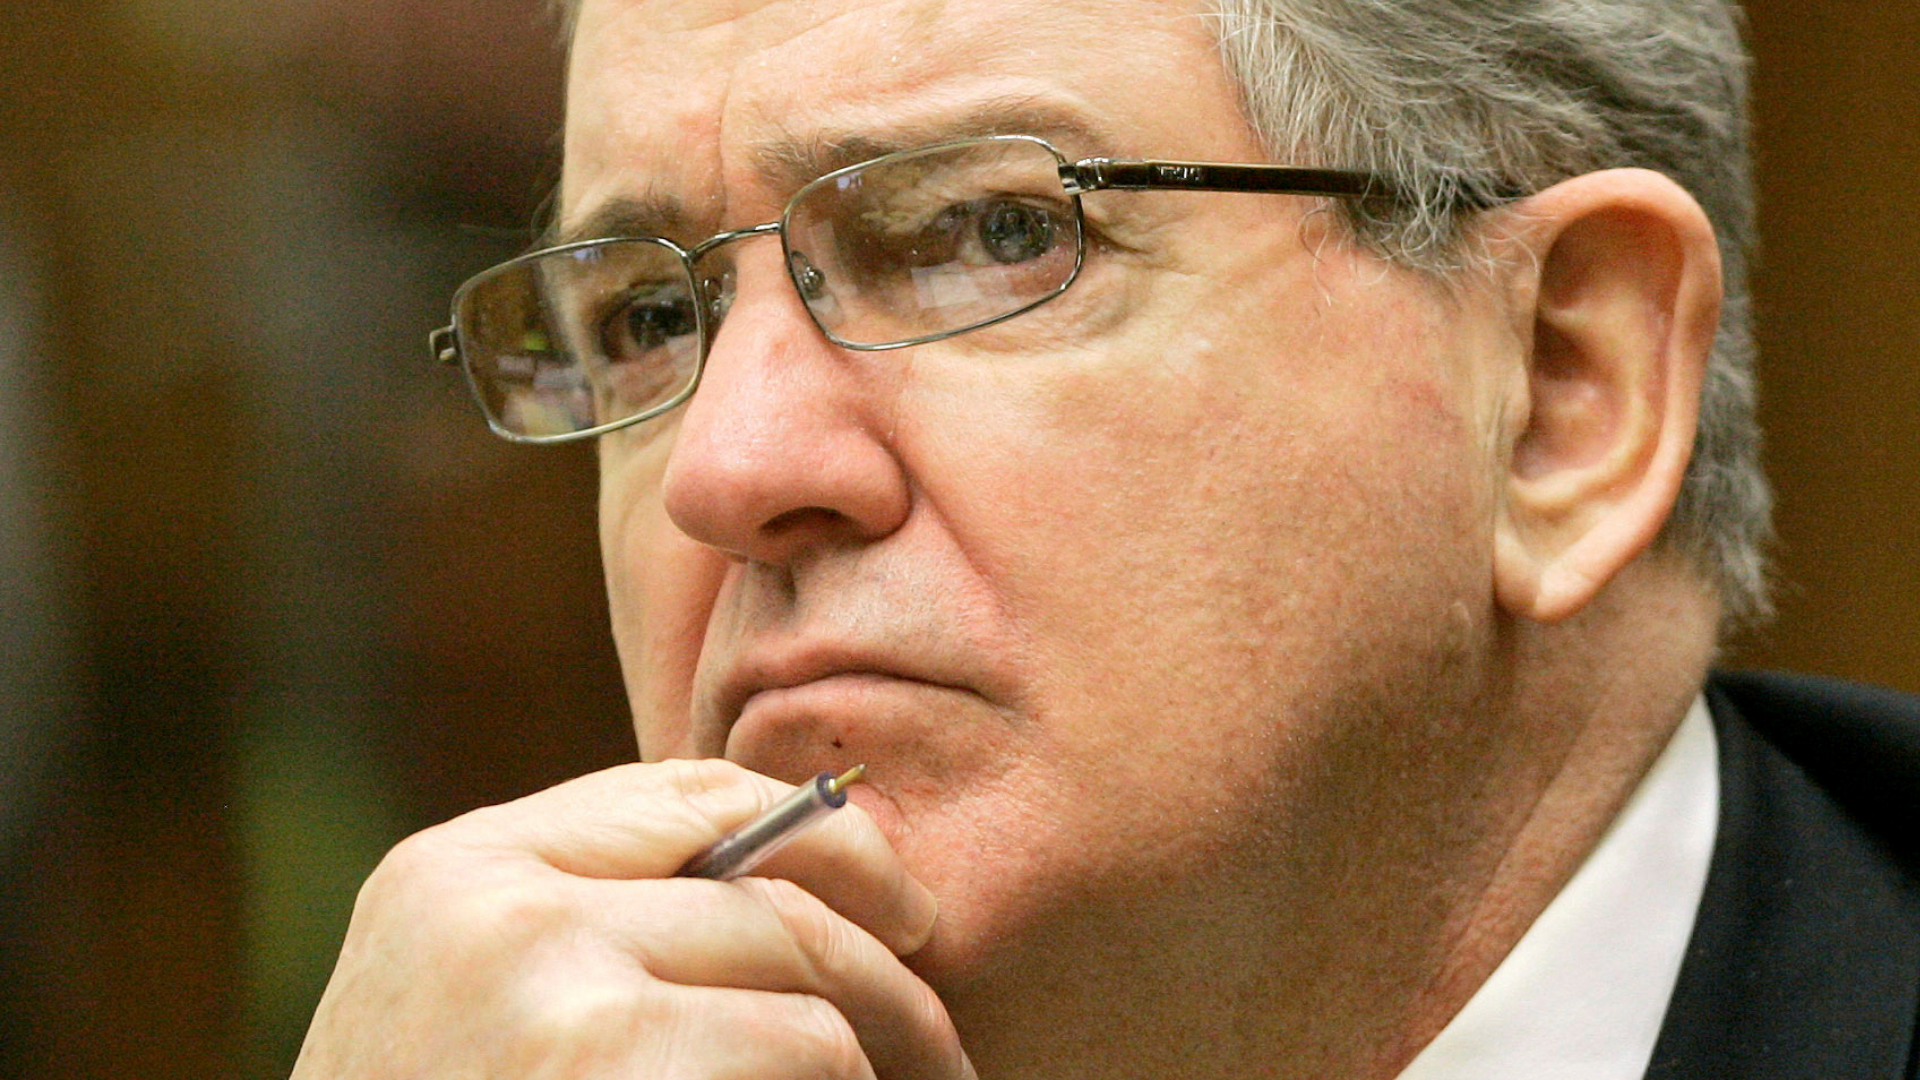 In this Oct. 15, 2008 file photo, former FBI agent John Connolly listens to the testimony during his trial in Miami. (AP Photo/Alan Diaz, File)